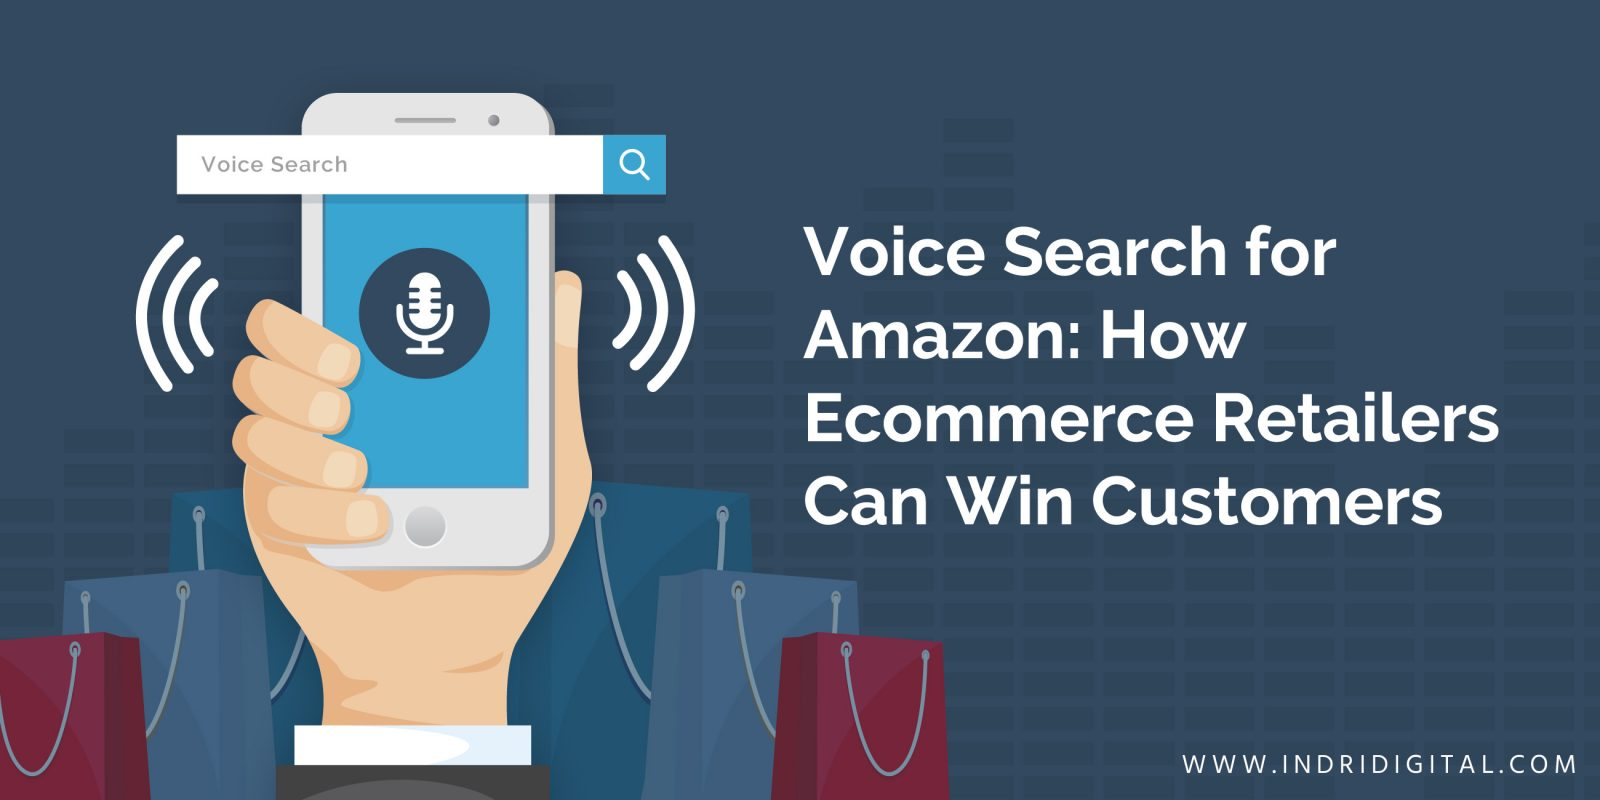 Voice Search for Amazon